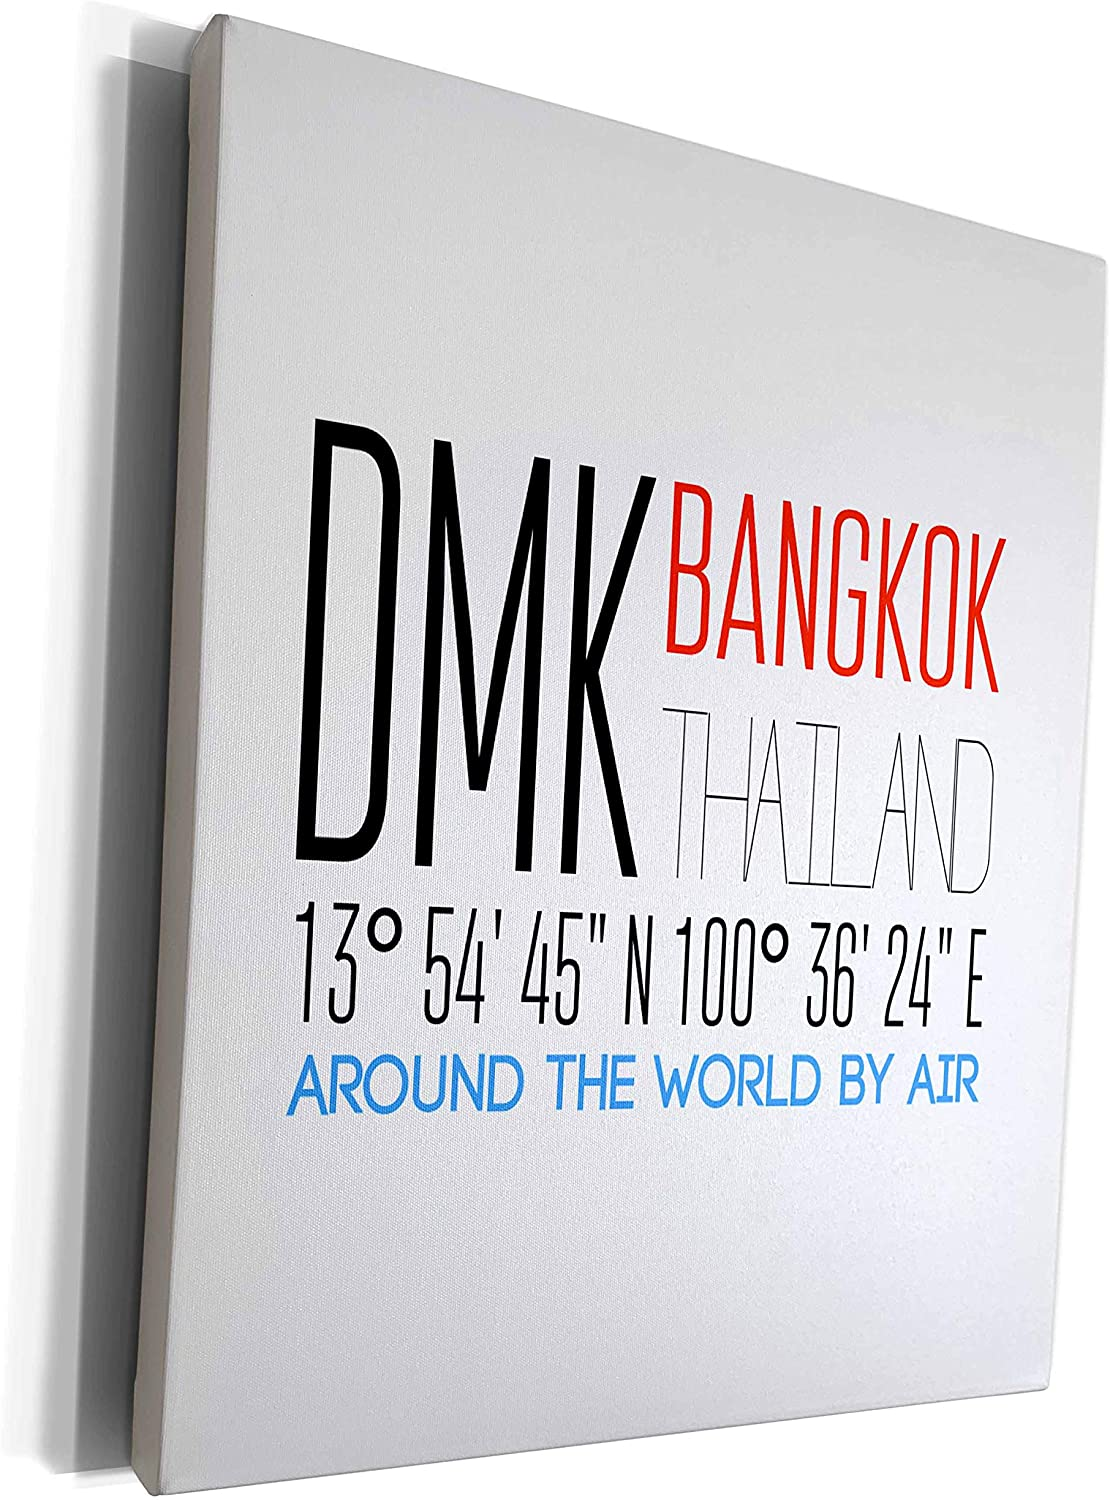 3dRose Alexis Design - Around The World By Air - Text DMK BANGKOK, THAILAND, location. Around the world by air - Museum Grade Canvas Wrap (cw_319830_1)